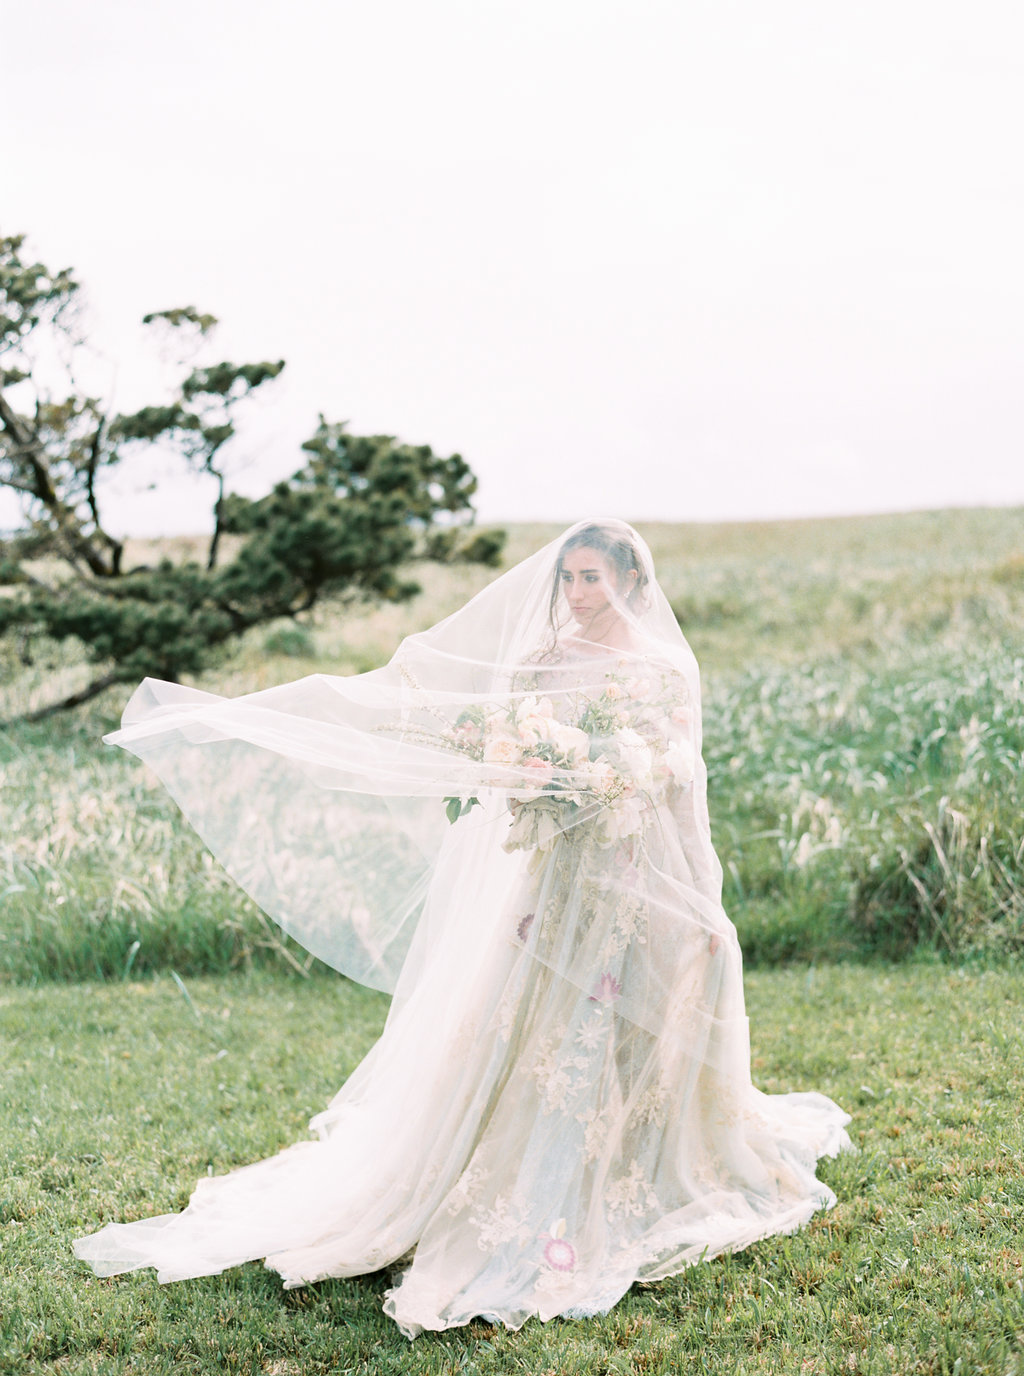 Coastal Oregon Inspiration with a Show-Stopping Wedding Gown - photo by Be Light Photography https://ruffledblog.com/coastal-oregon-inspiration-with-a-show-stopping-wedding-gown